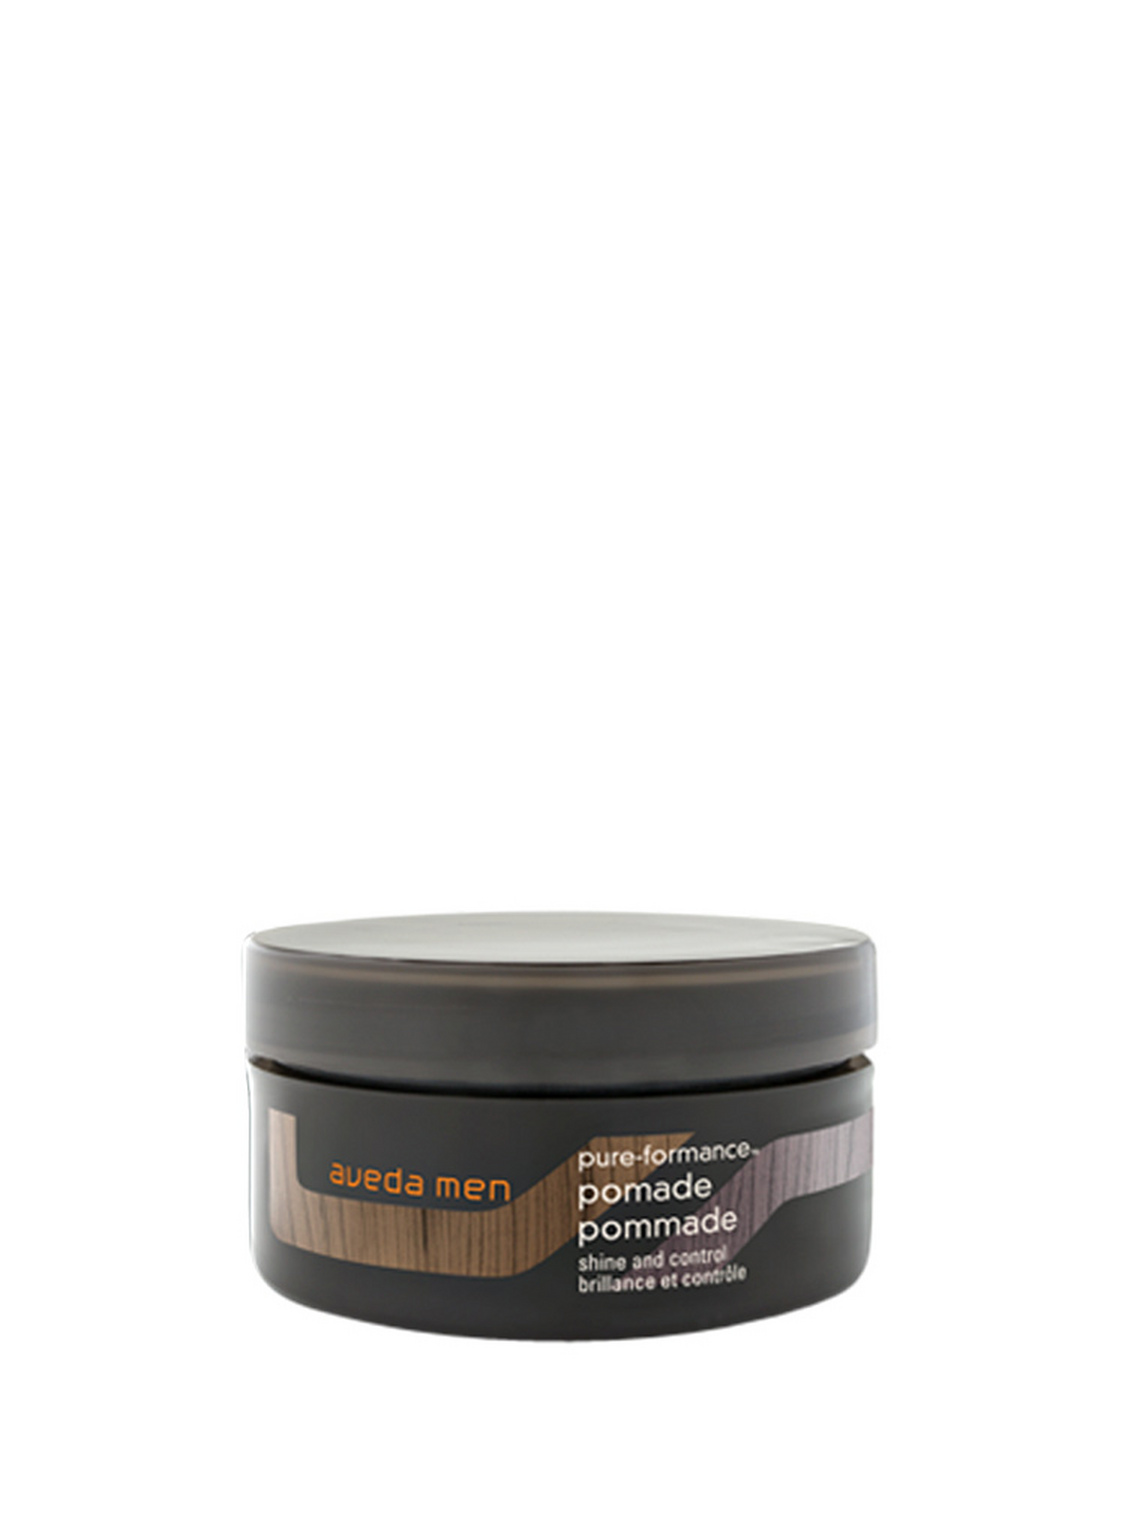 Image of Aveda Aveda Men Pure-Formance Pommade 75 ml